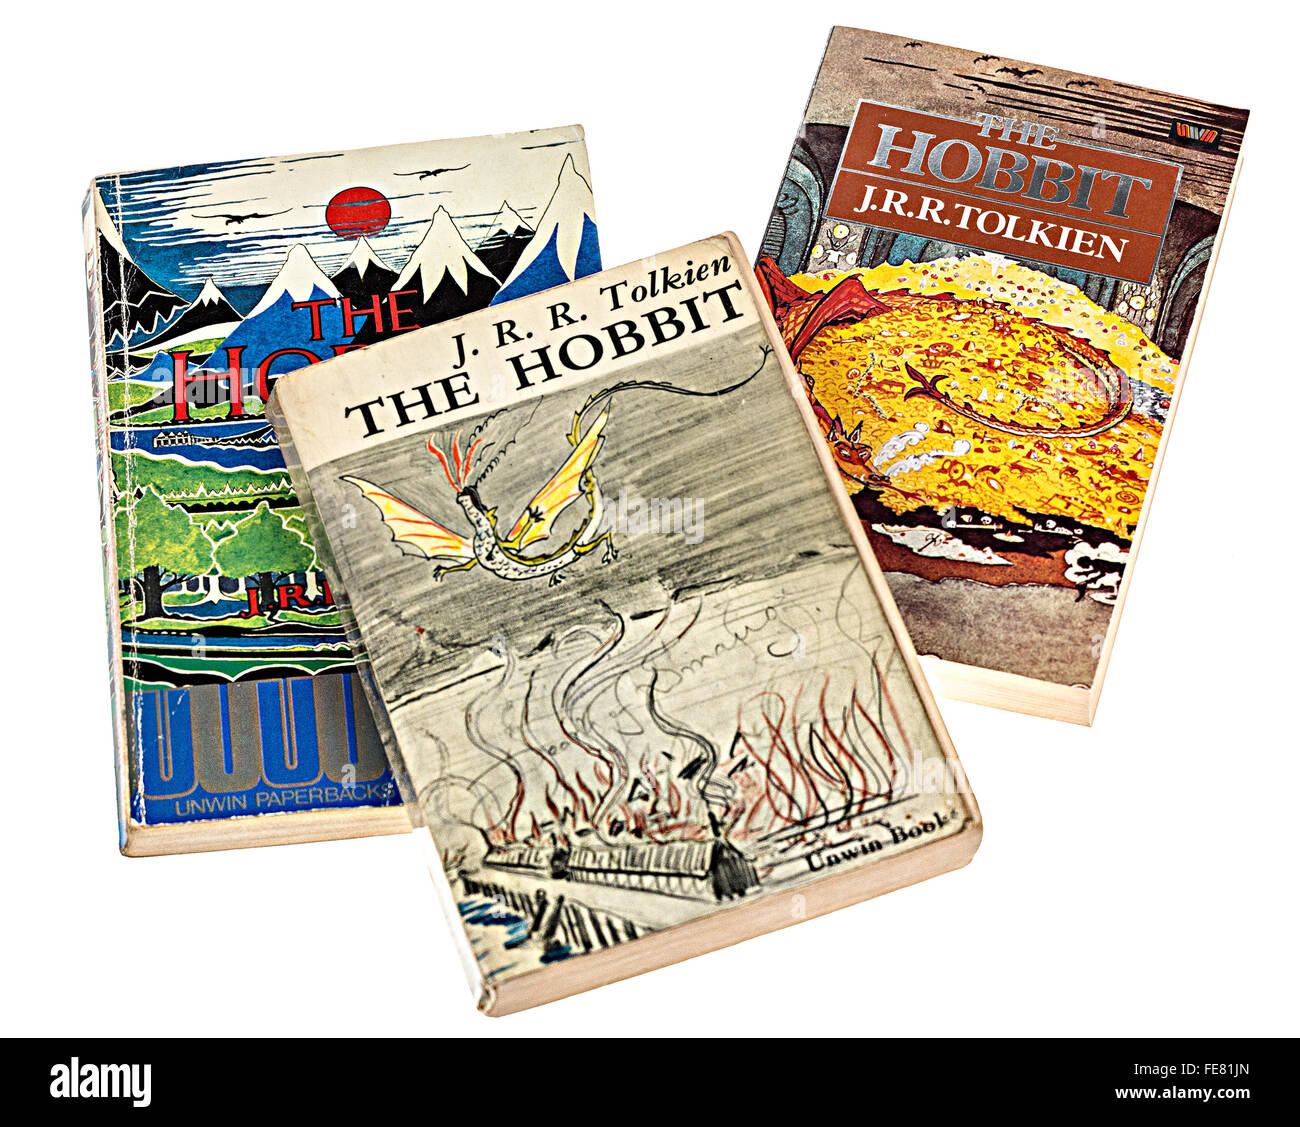 Early issue paperback books by J.R.R. Tolkein, The Hobbit - Stock Image